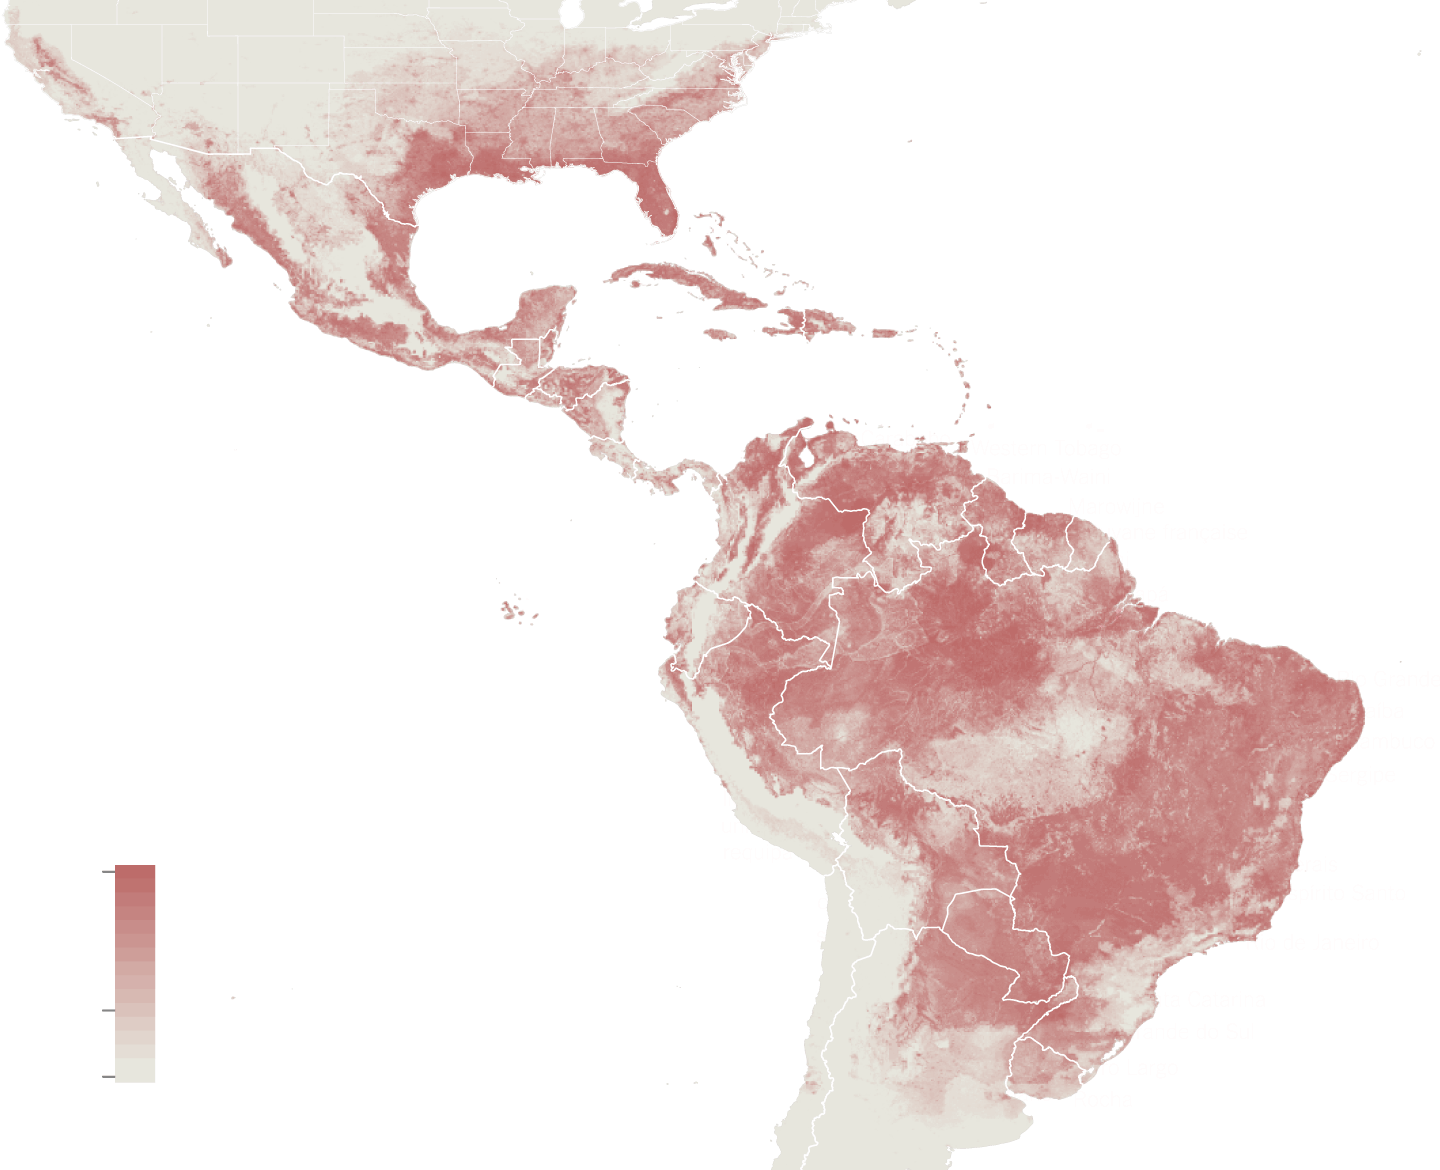 Zika mosquito distribution by nyt